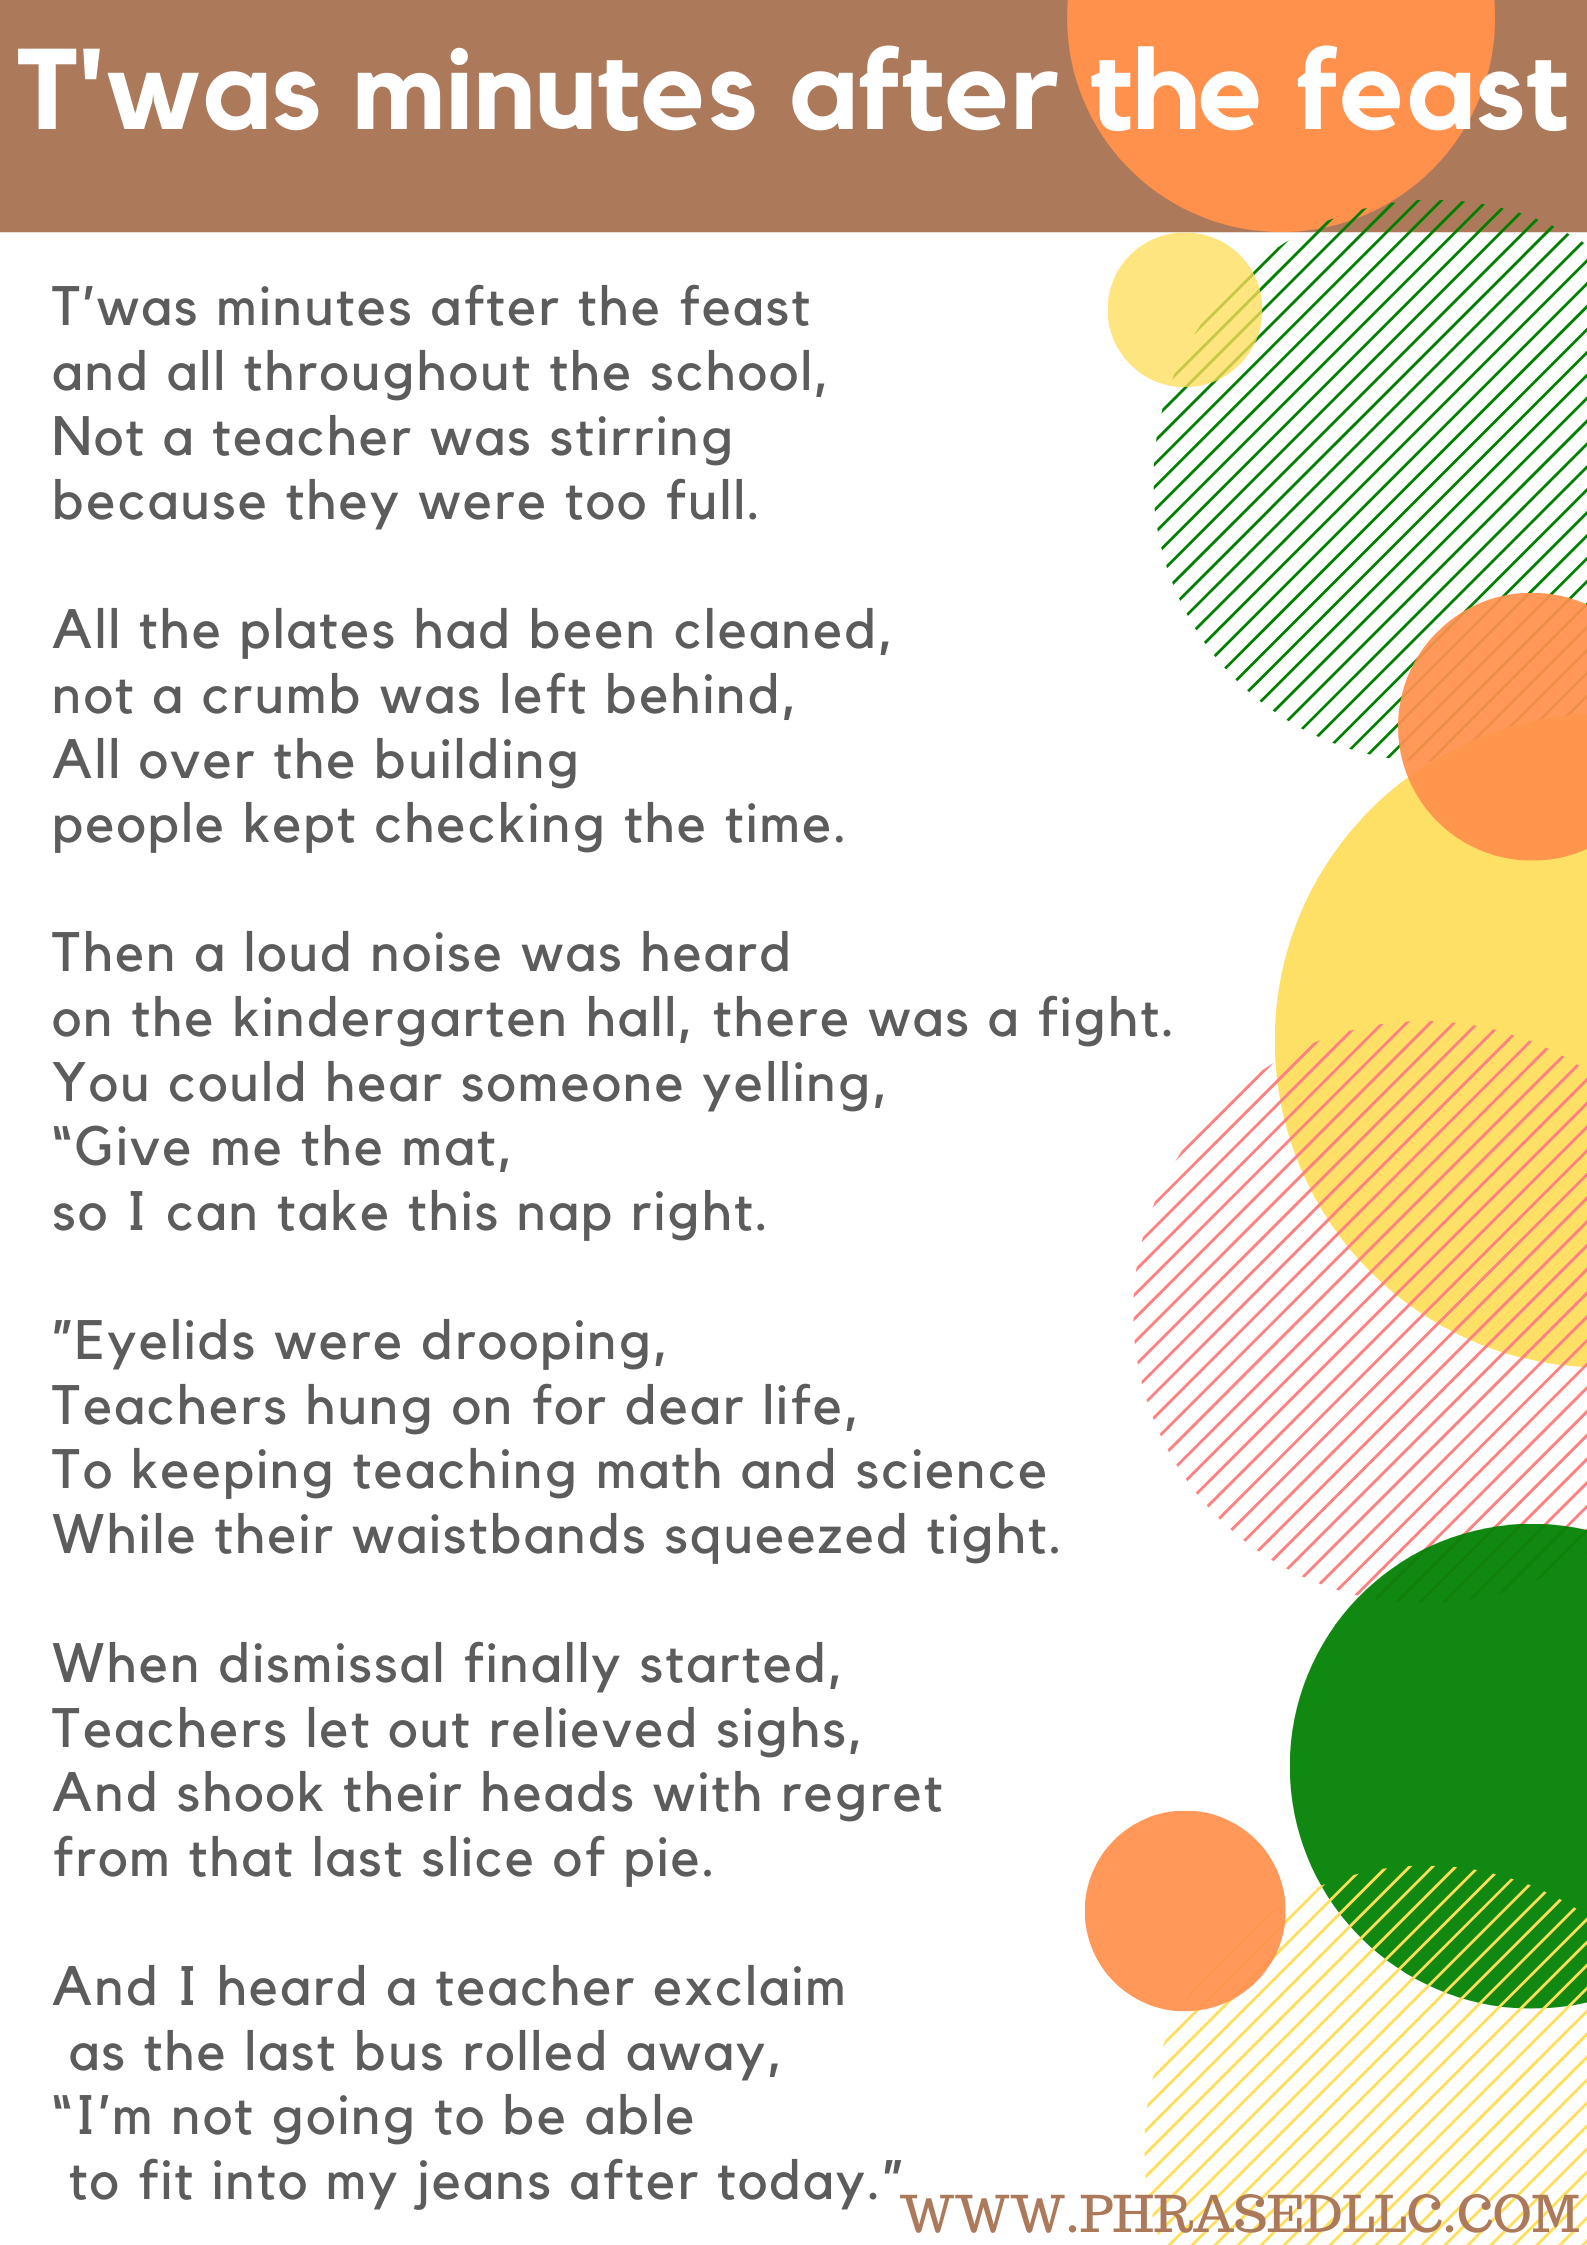 T'was Minutes After the Feast (a holiday poem for teachers